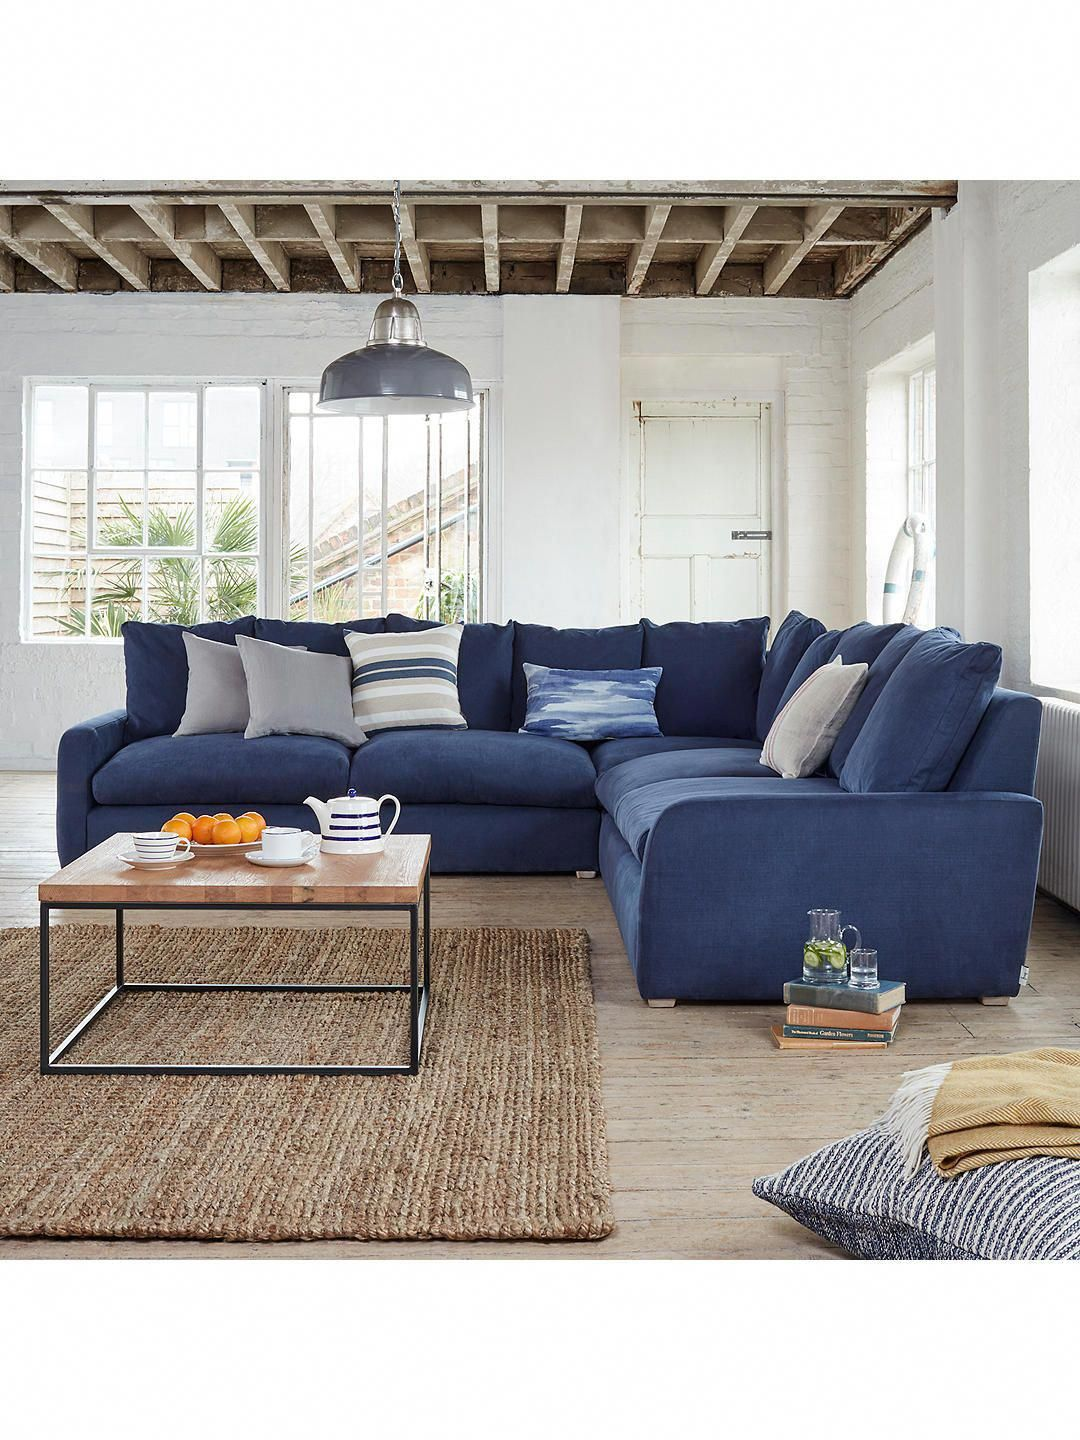 Furniture Discountfurnituretampa Product Id 4409941724 In 2020 Blue Corner Sofas Corner Sofa Living Room Corner Sofa Bed